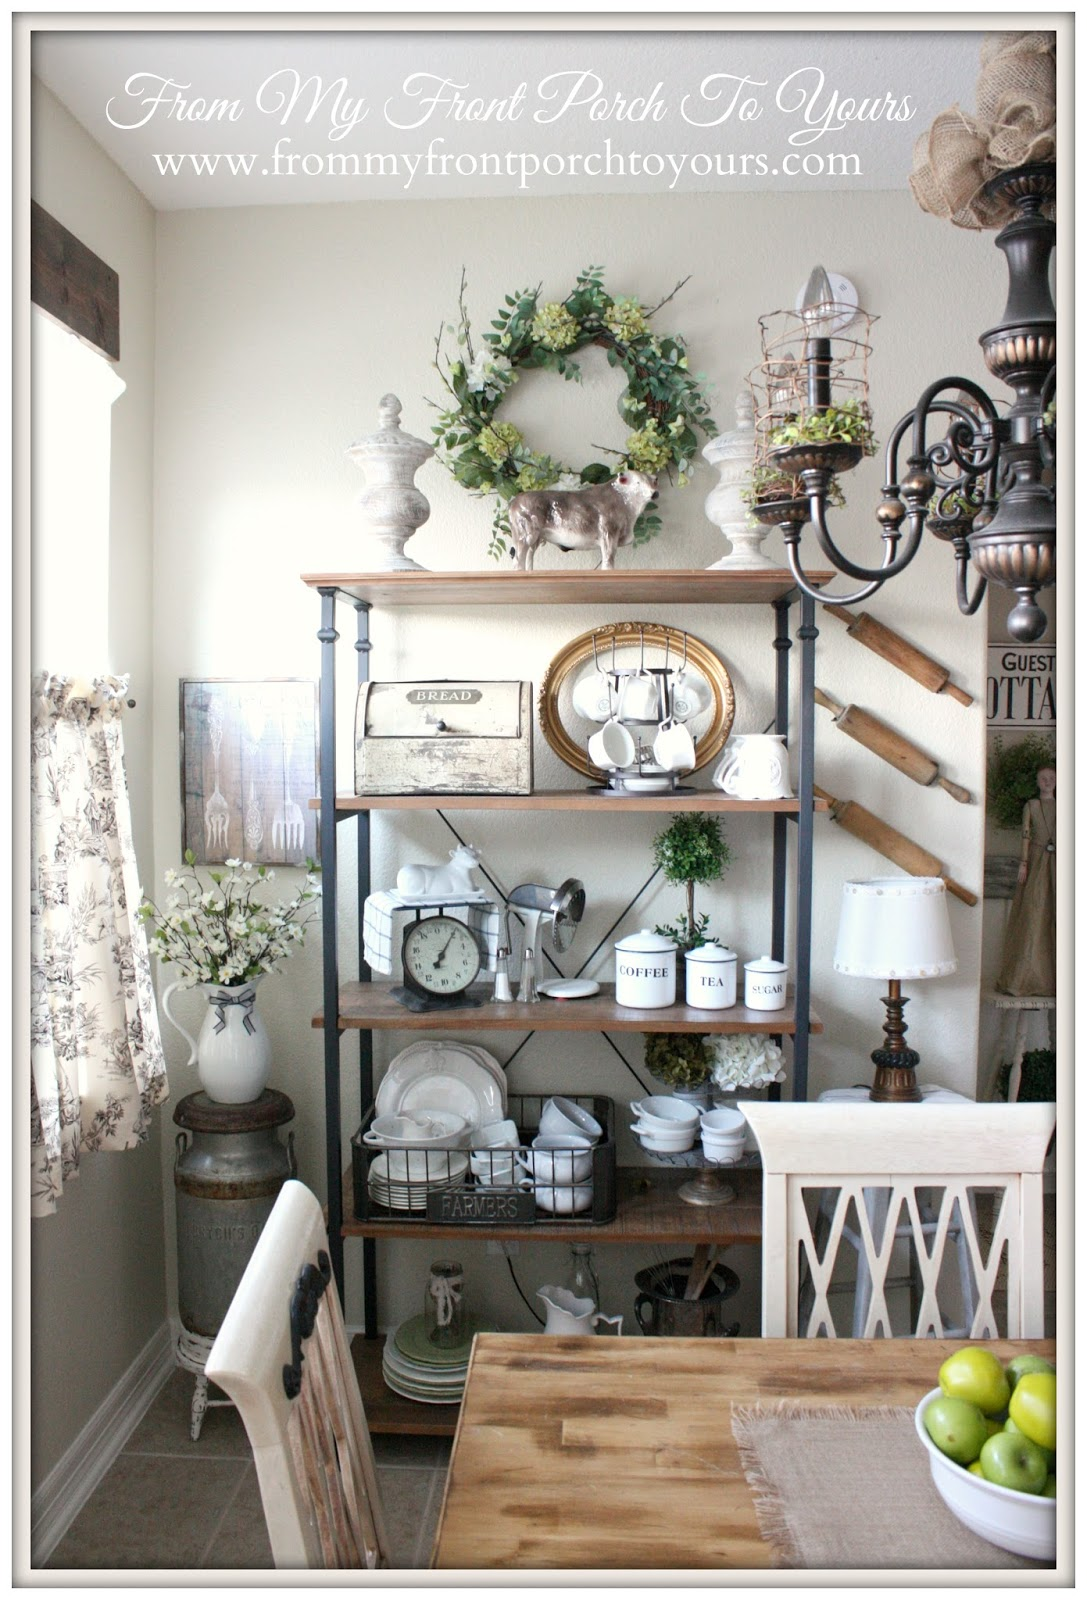 From My Front Porch To Yours- French Farmhouse Bakers Rack